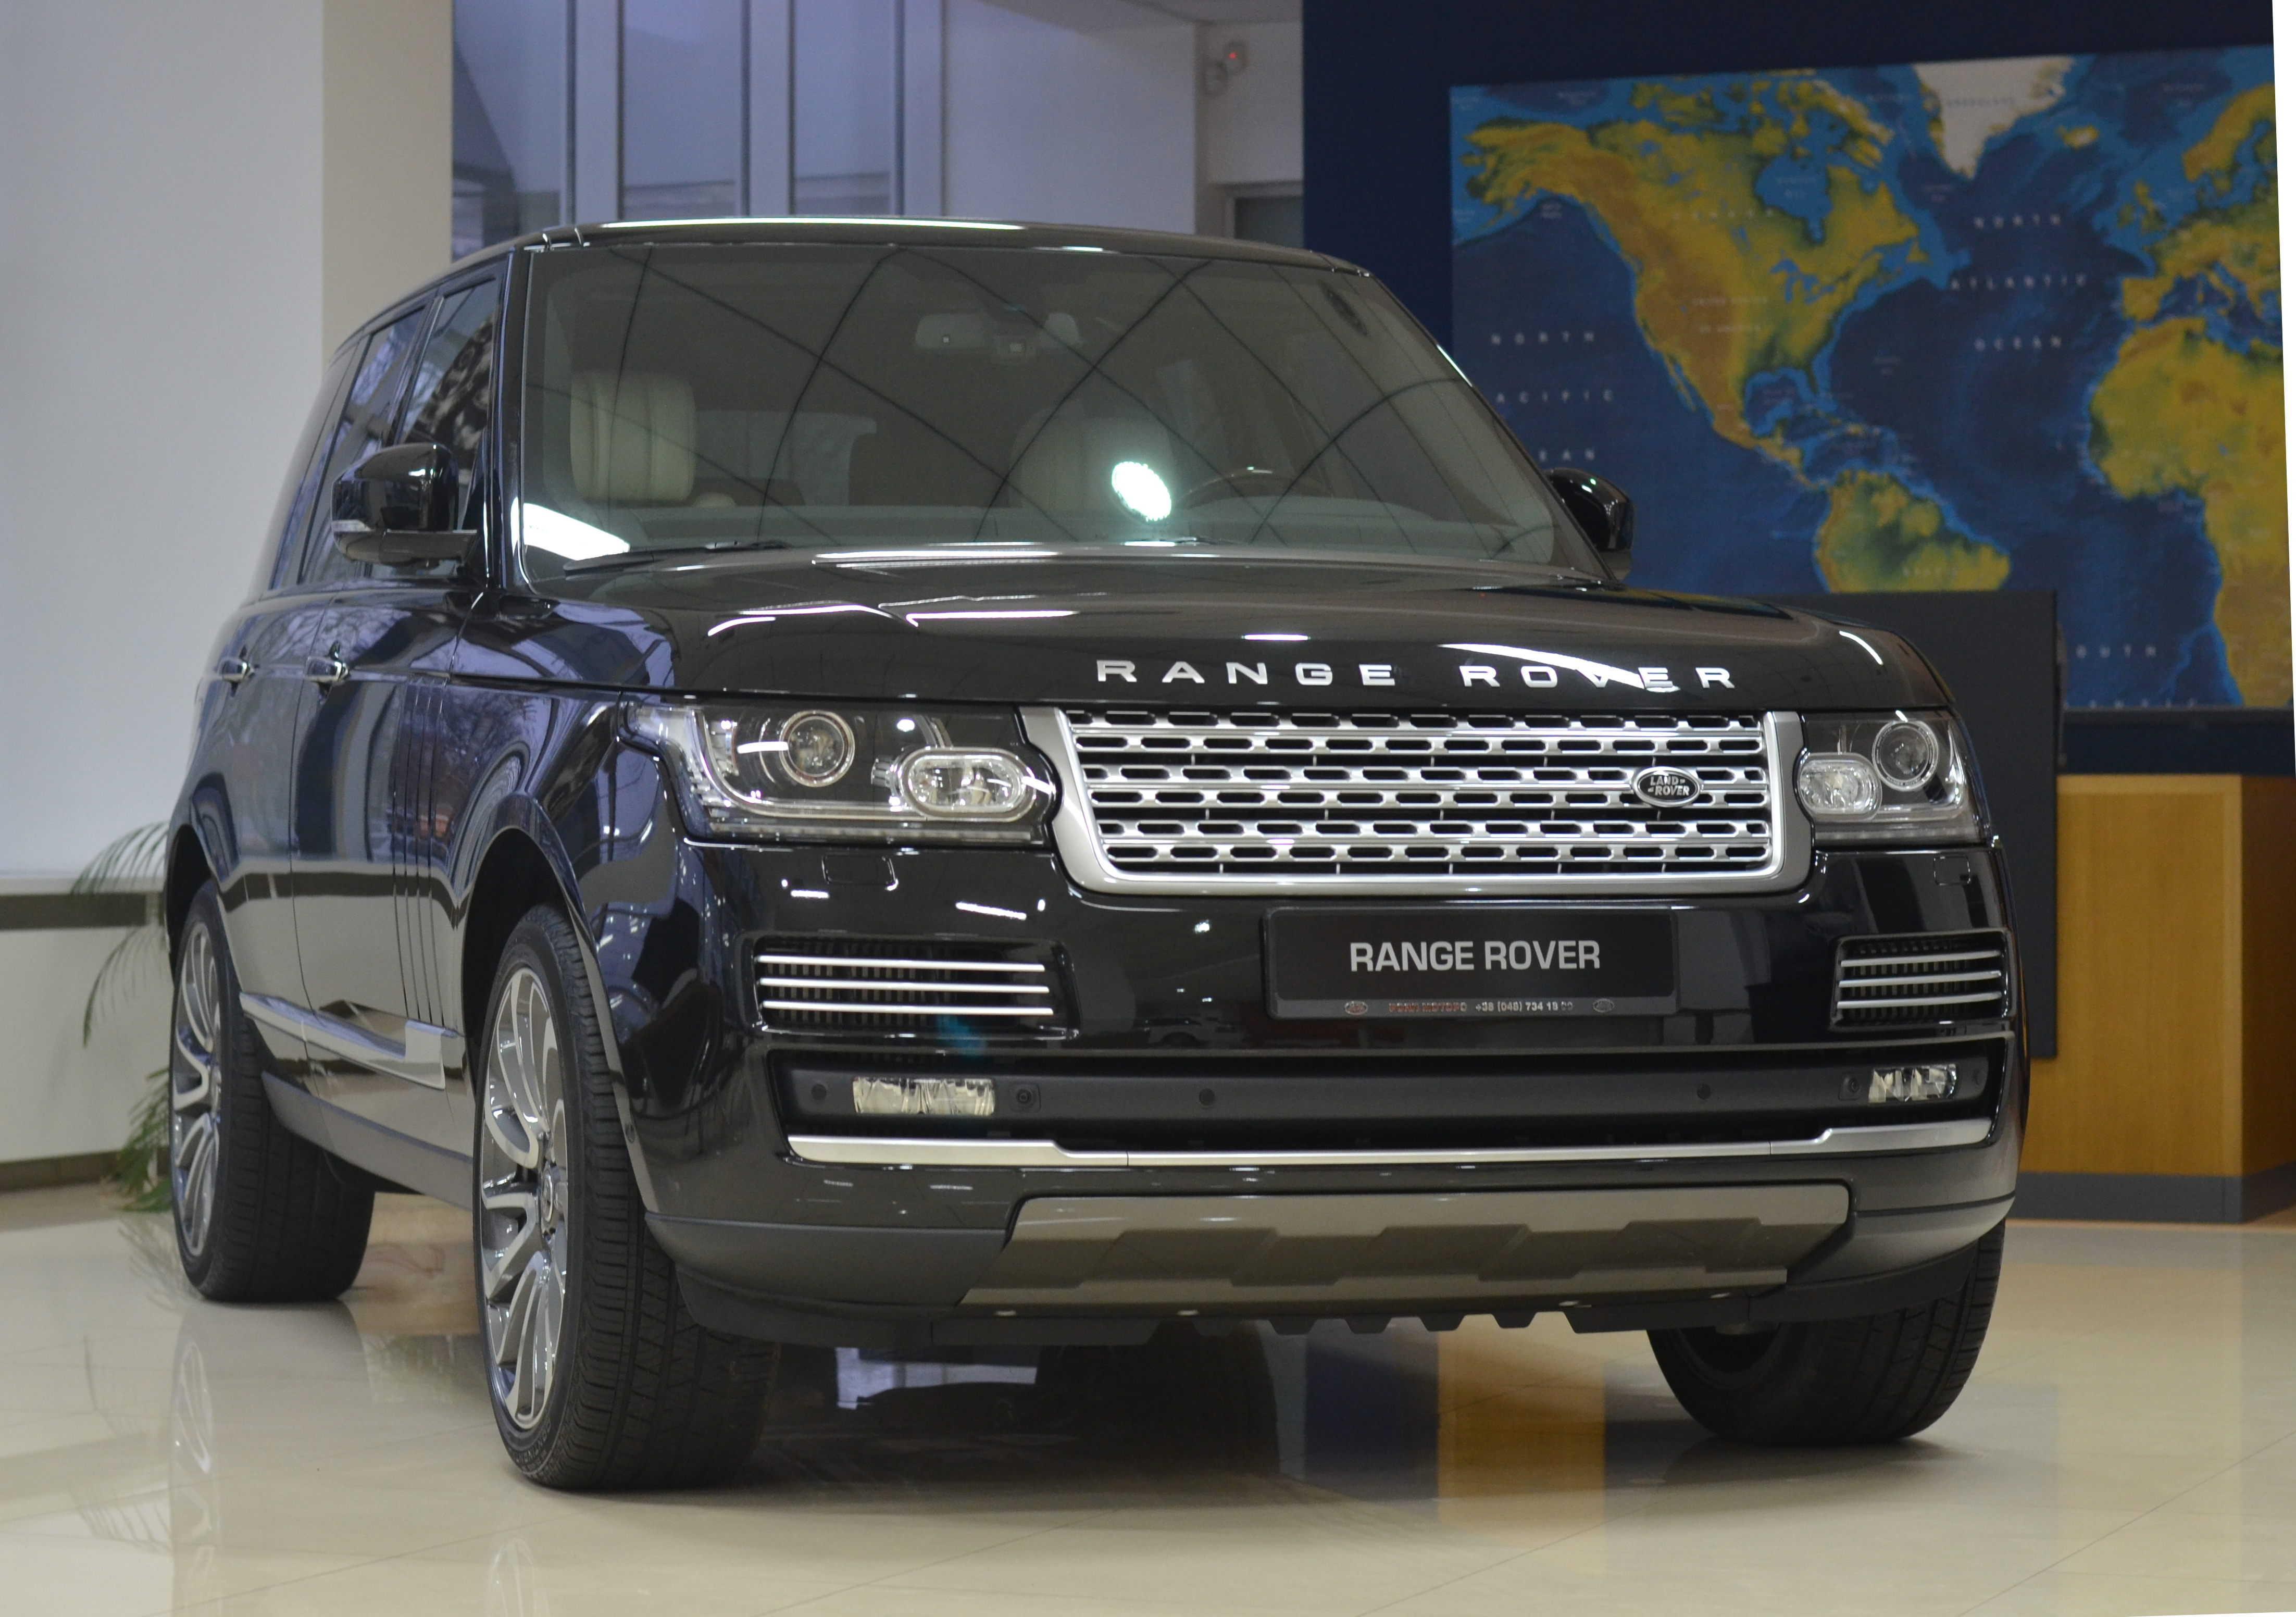 file range rover l405 front view jpg wikimedia commons. Black Bedroom Furniture Sets. Home Design Ideas